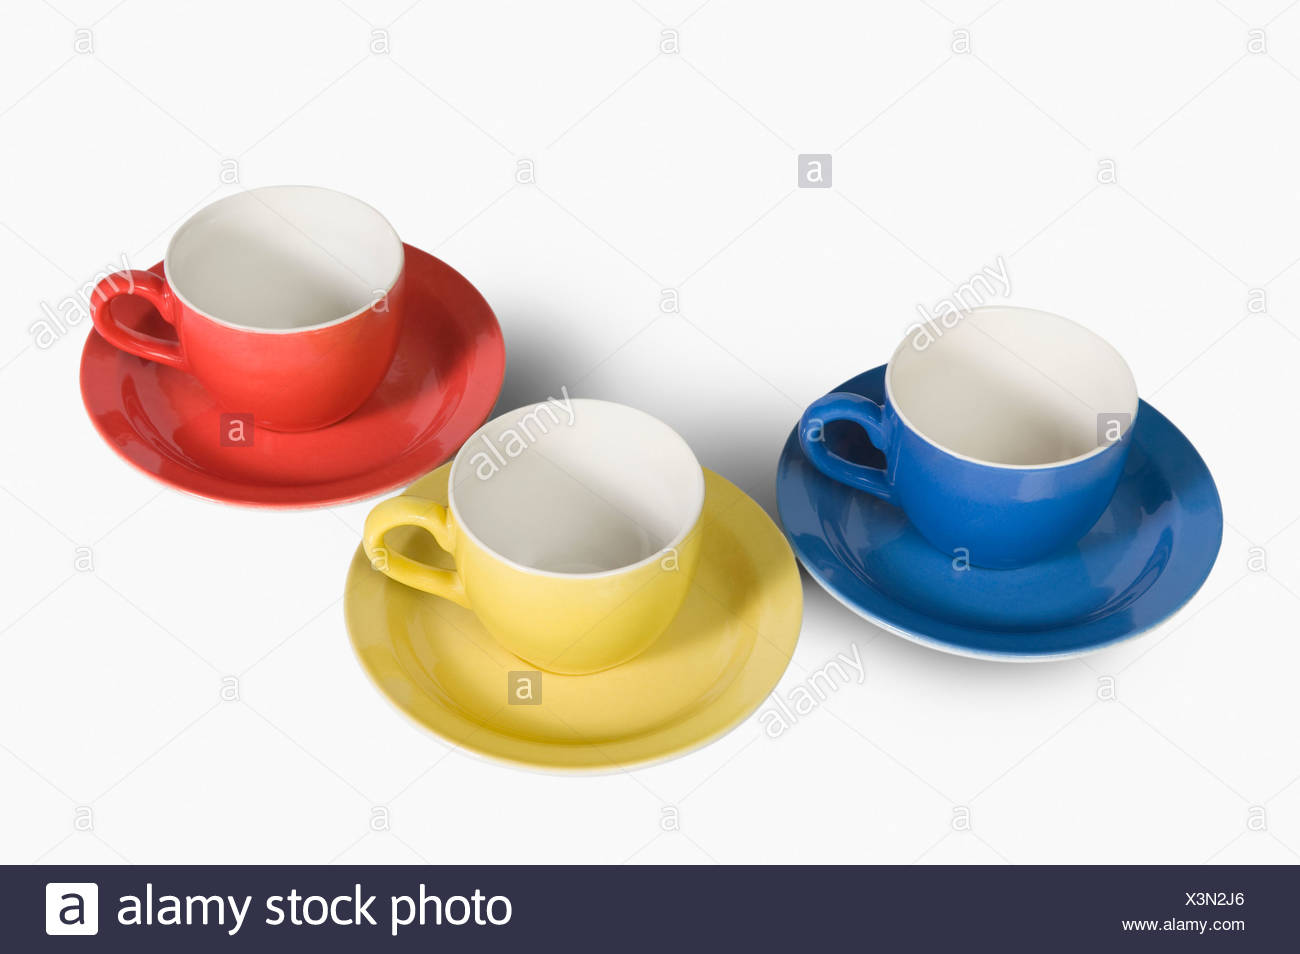 High angle view of colorful tea cups with saucers - Stock Image